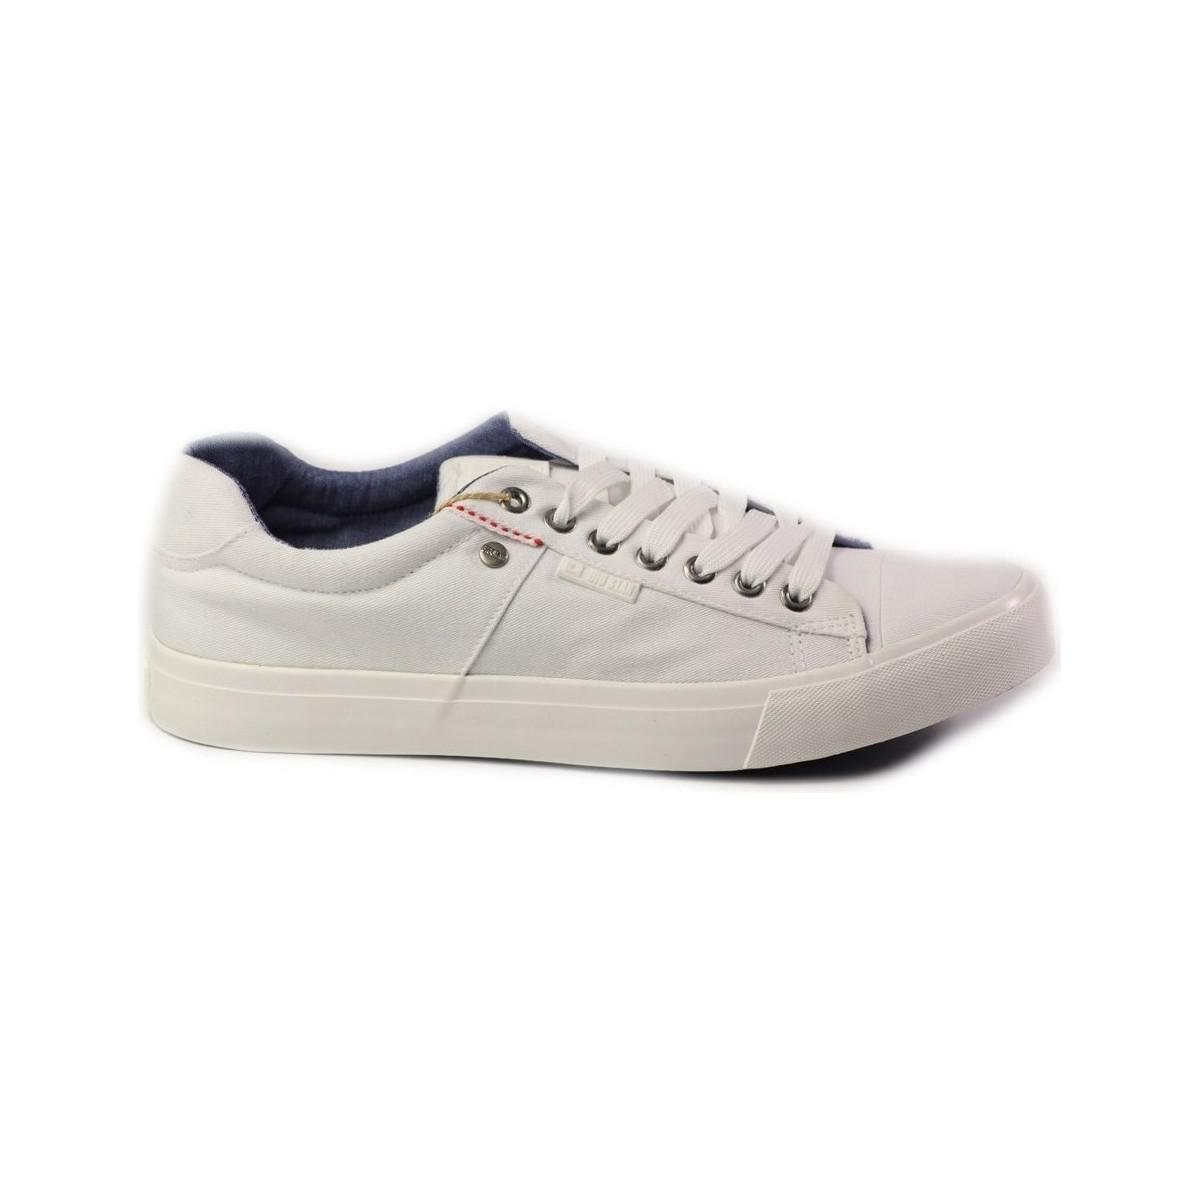 Big Star U174120 Men's Shoes (trainers) In White for Men